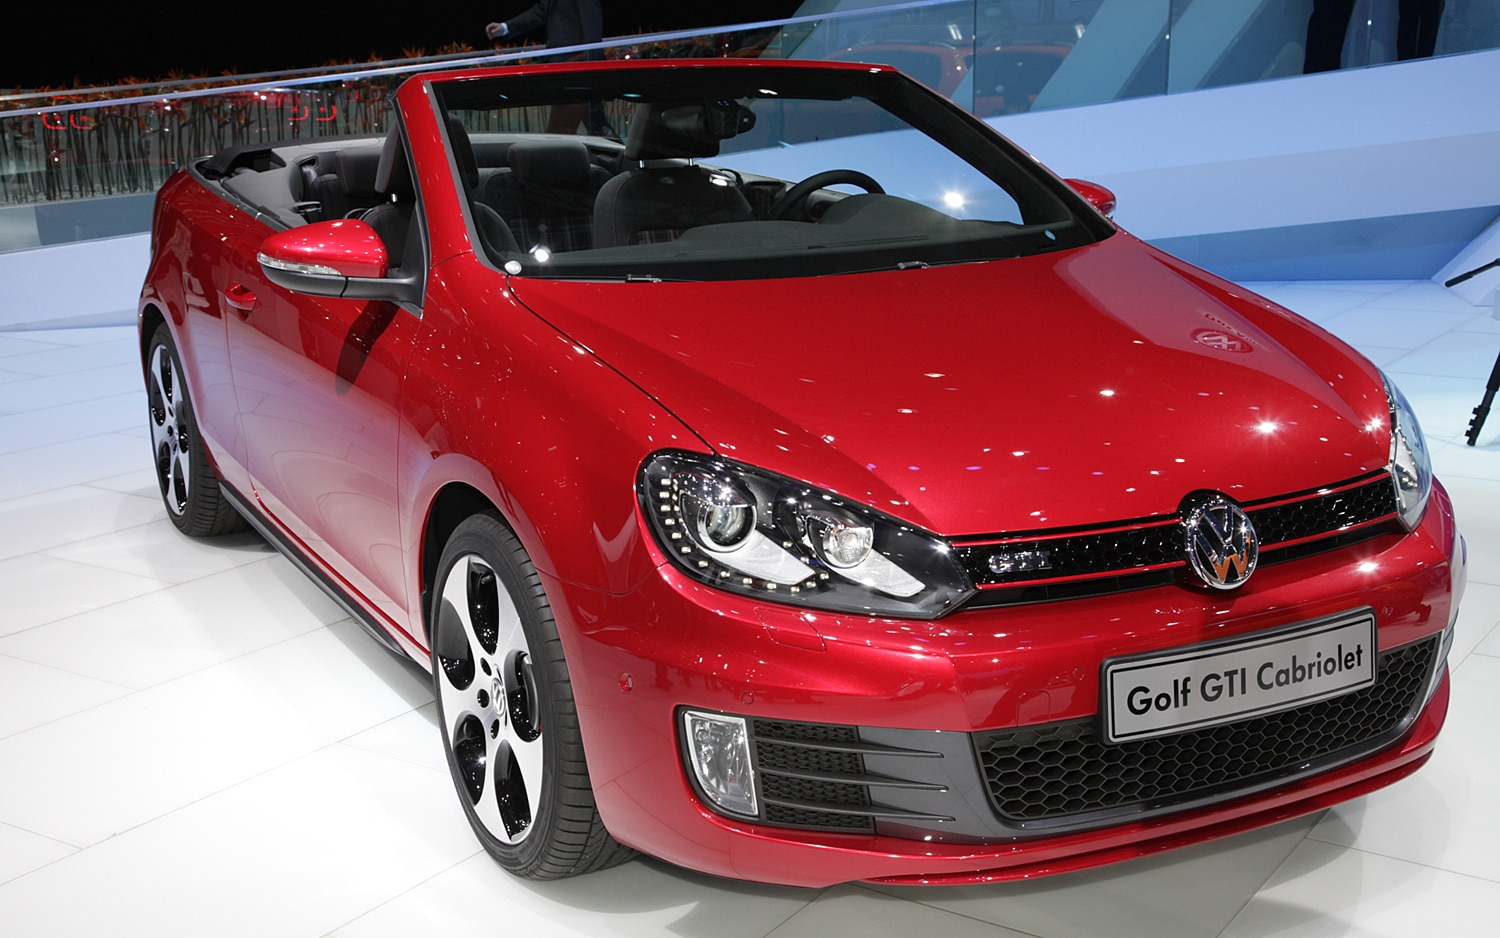 2012 volkswagen gti cabriolet first look automobile magazine. Black Bedroom Furniture Sets. Home Design Ideas